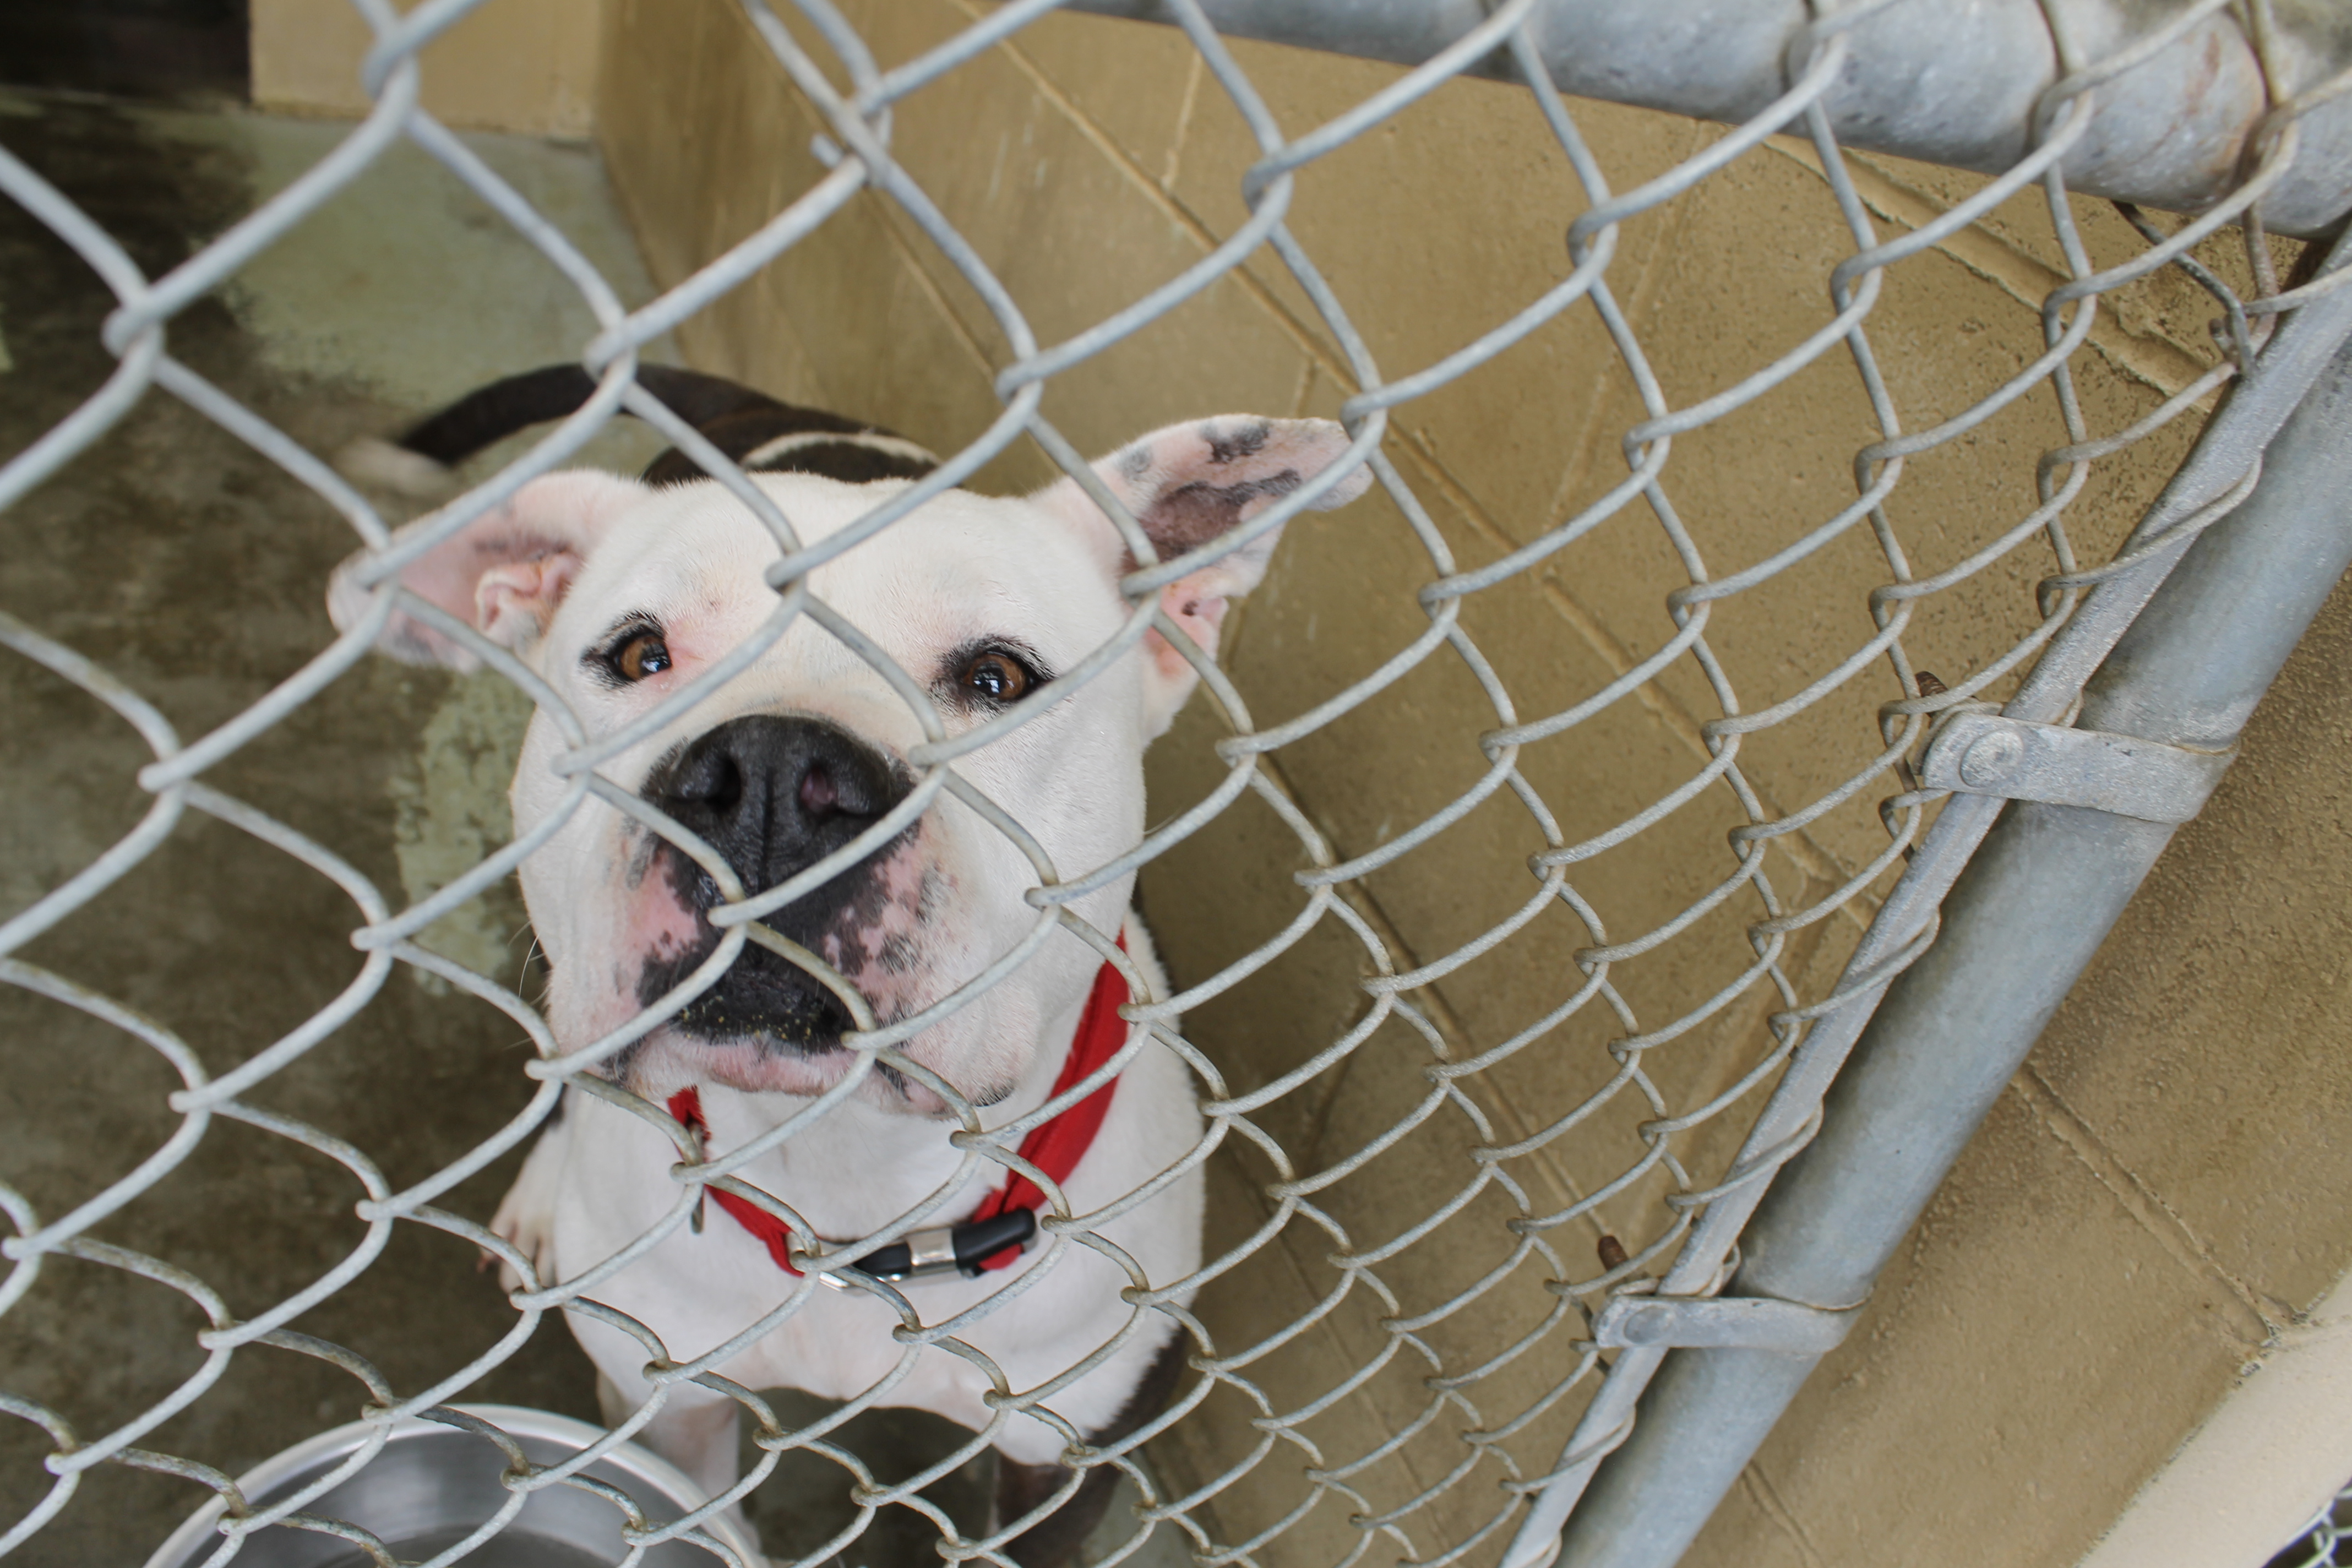 lompoc animal shelter